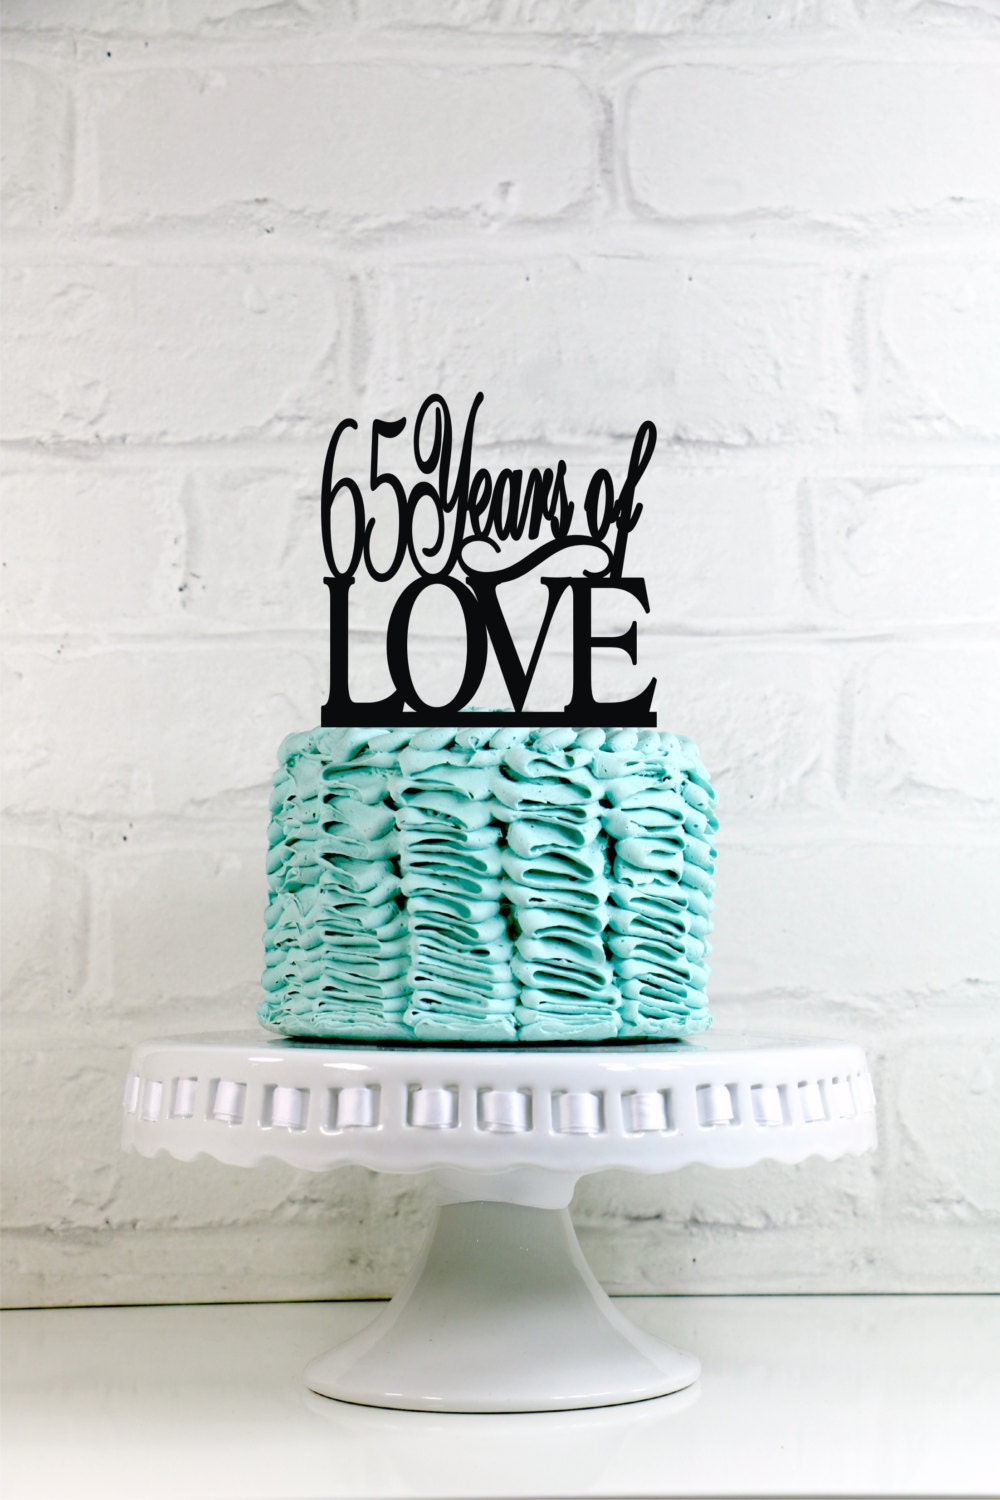 65 Years Of Love 65th Anniversary Or Birthday Cake Topper Or